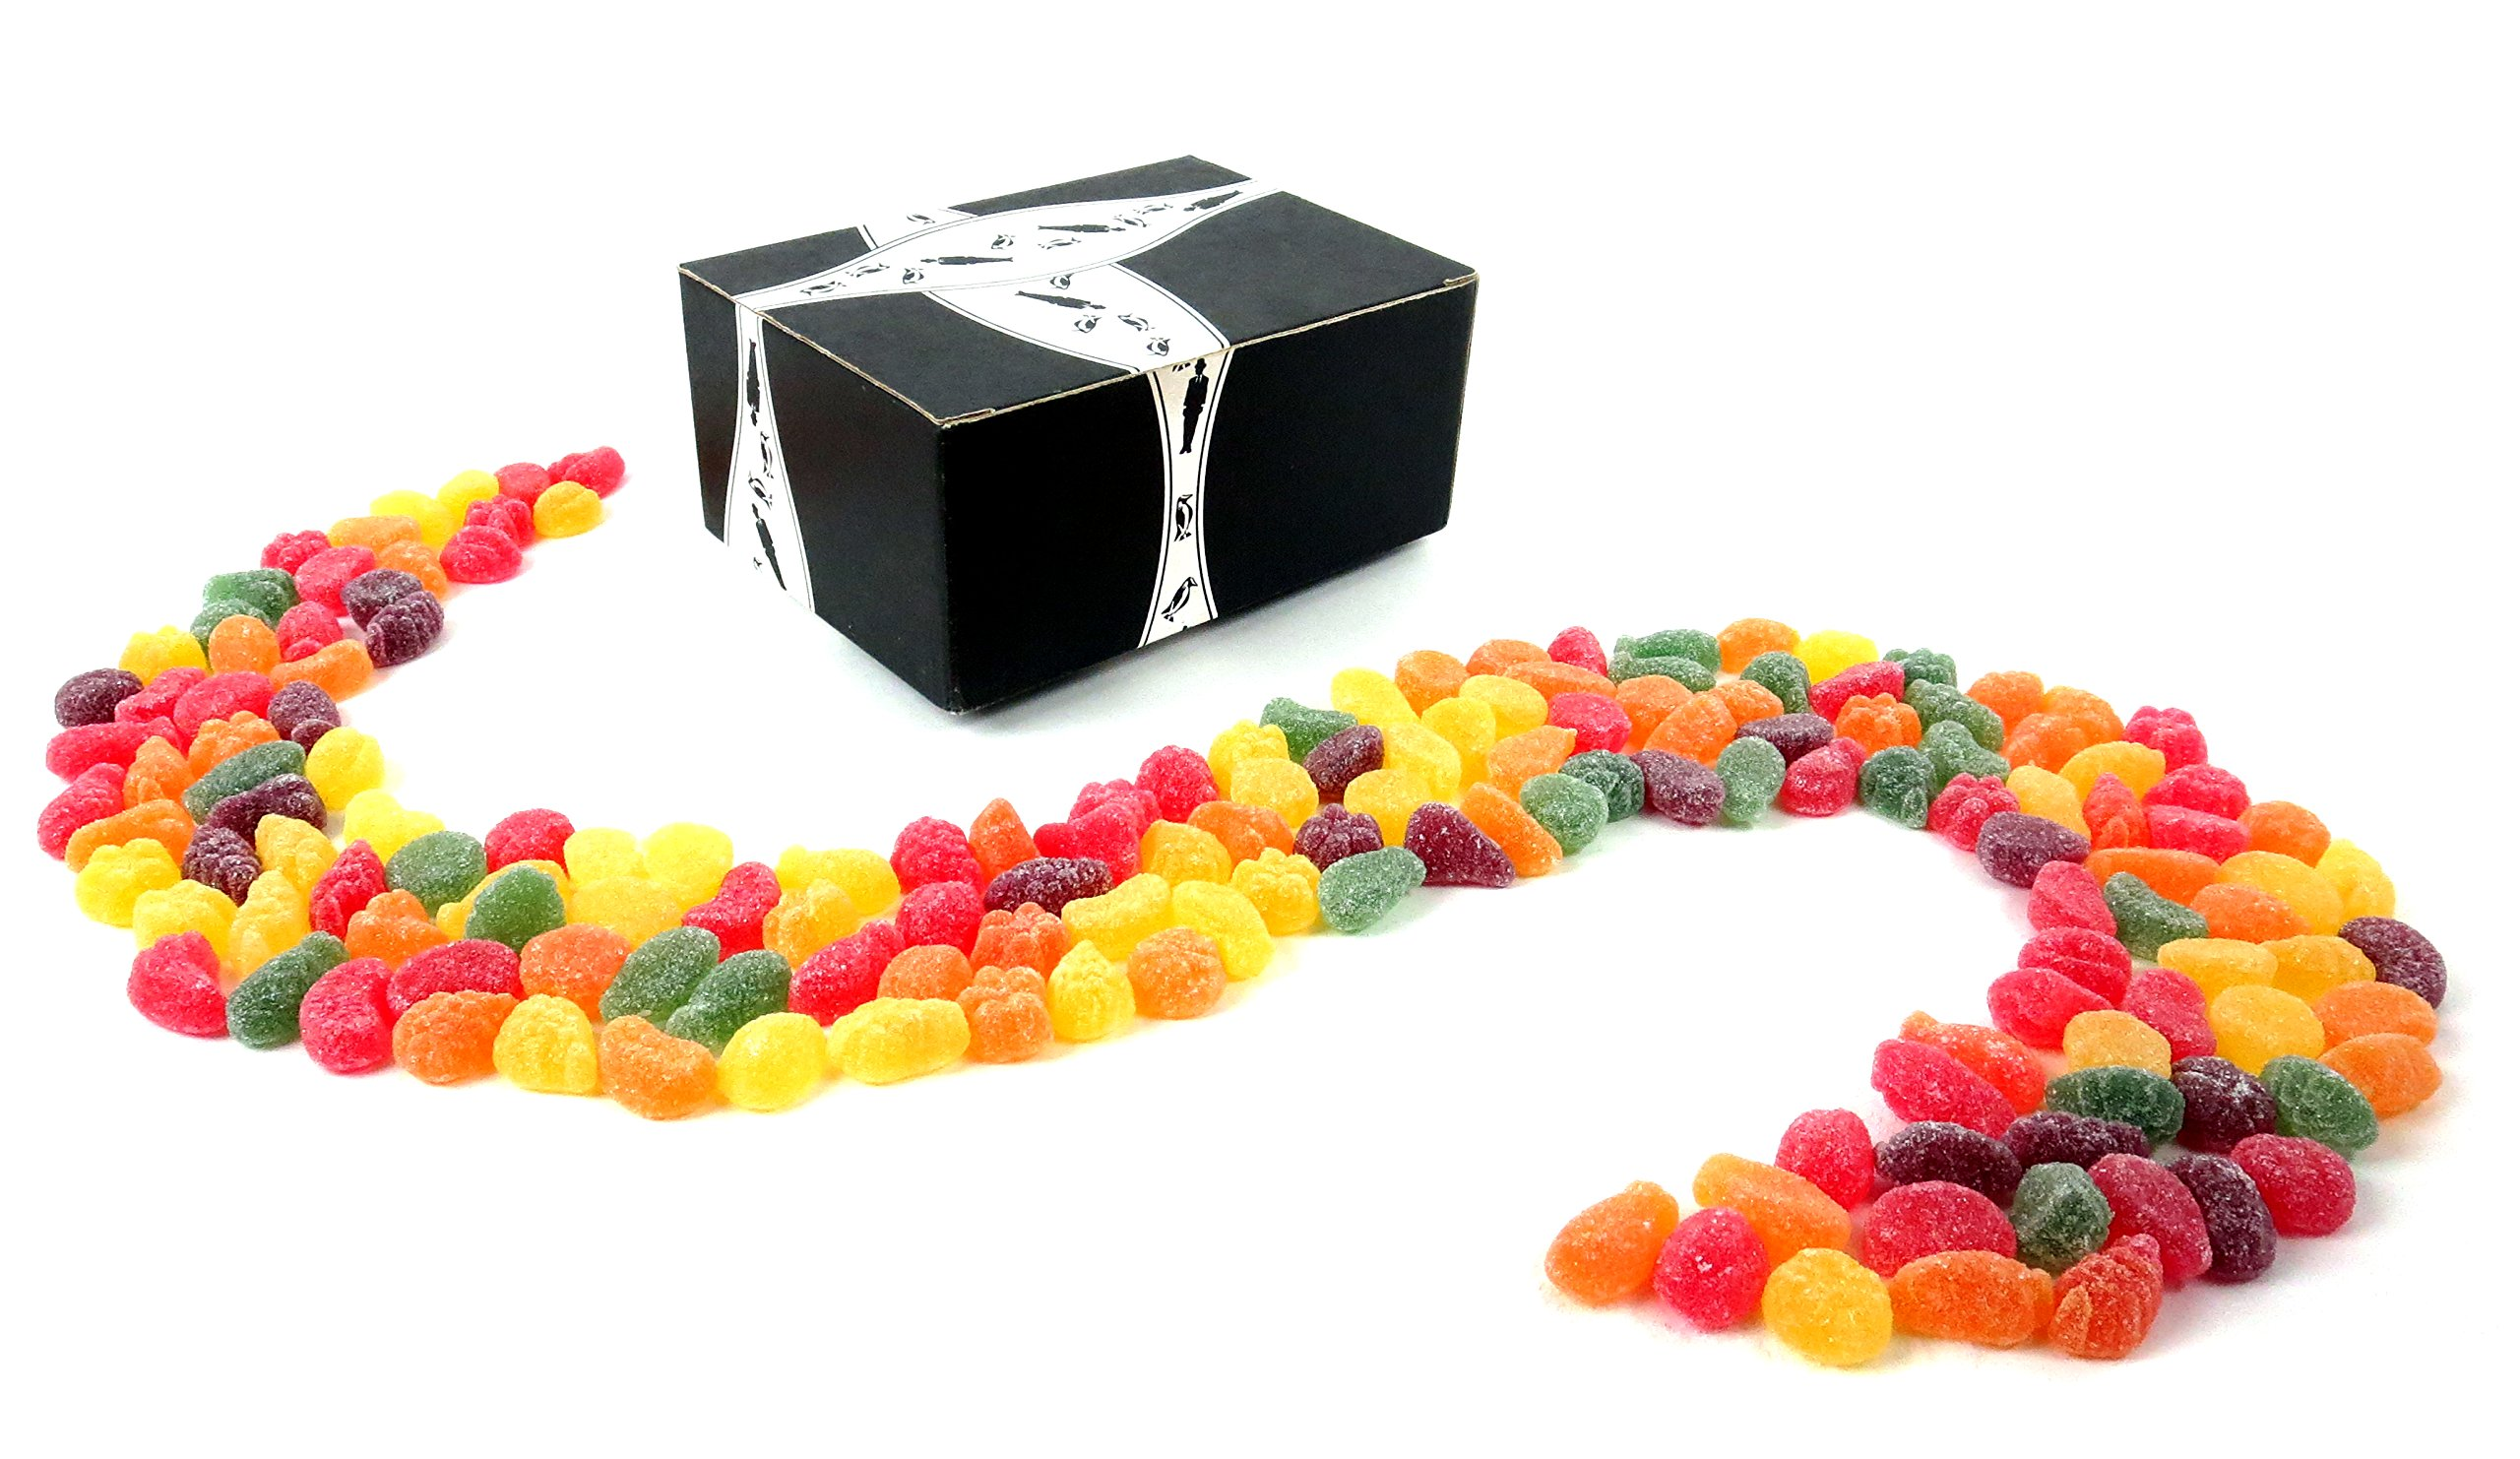 Gustaf's Fruit Salad Sanded Gummy Candy, 2.2 lb Bag in a BlackTie Box